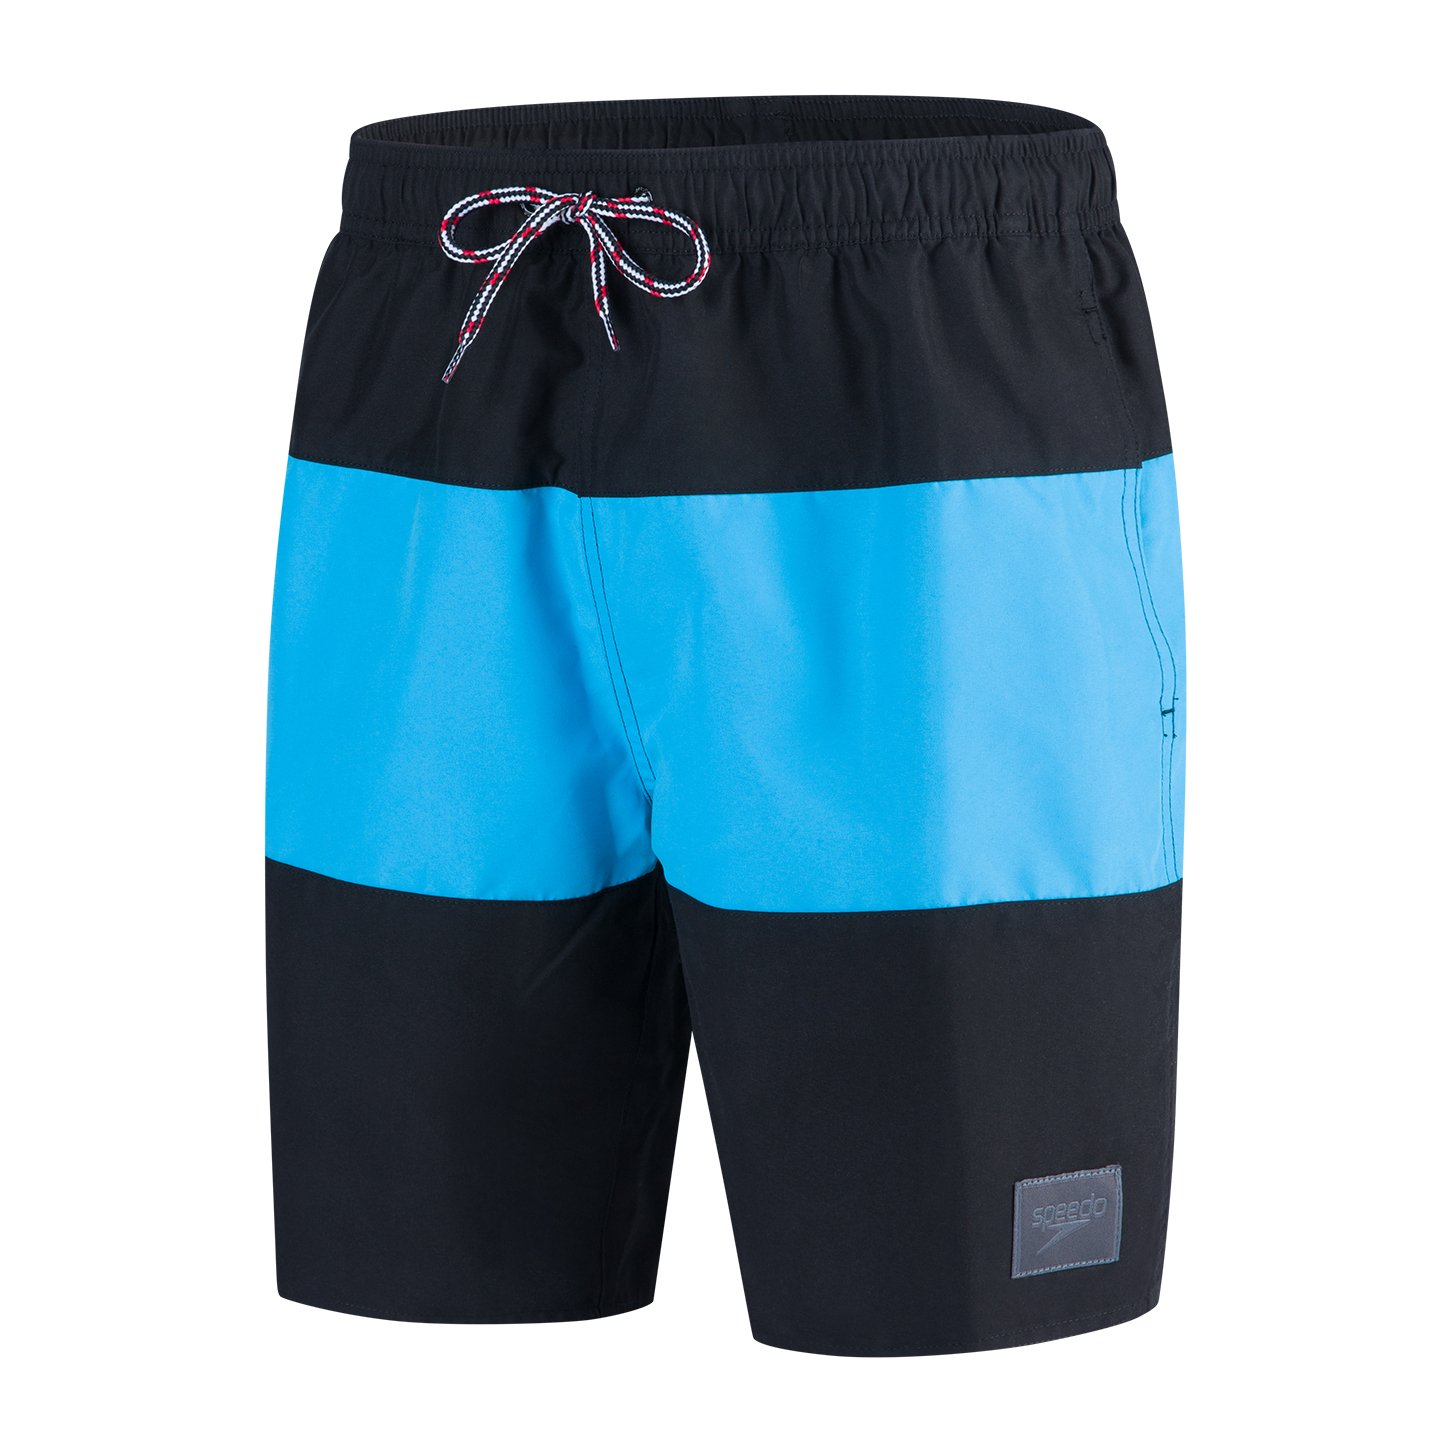 Speedo Men's Panel Leisure Swim Shorts 811362A504